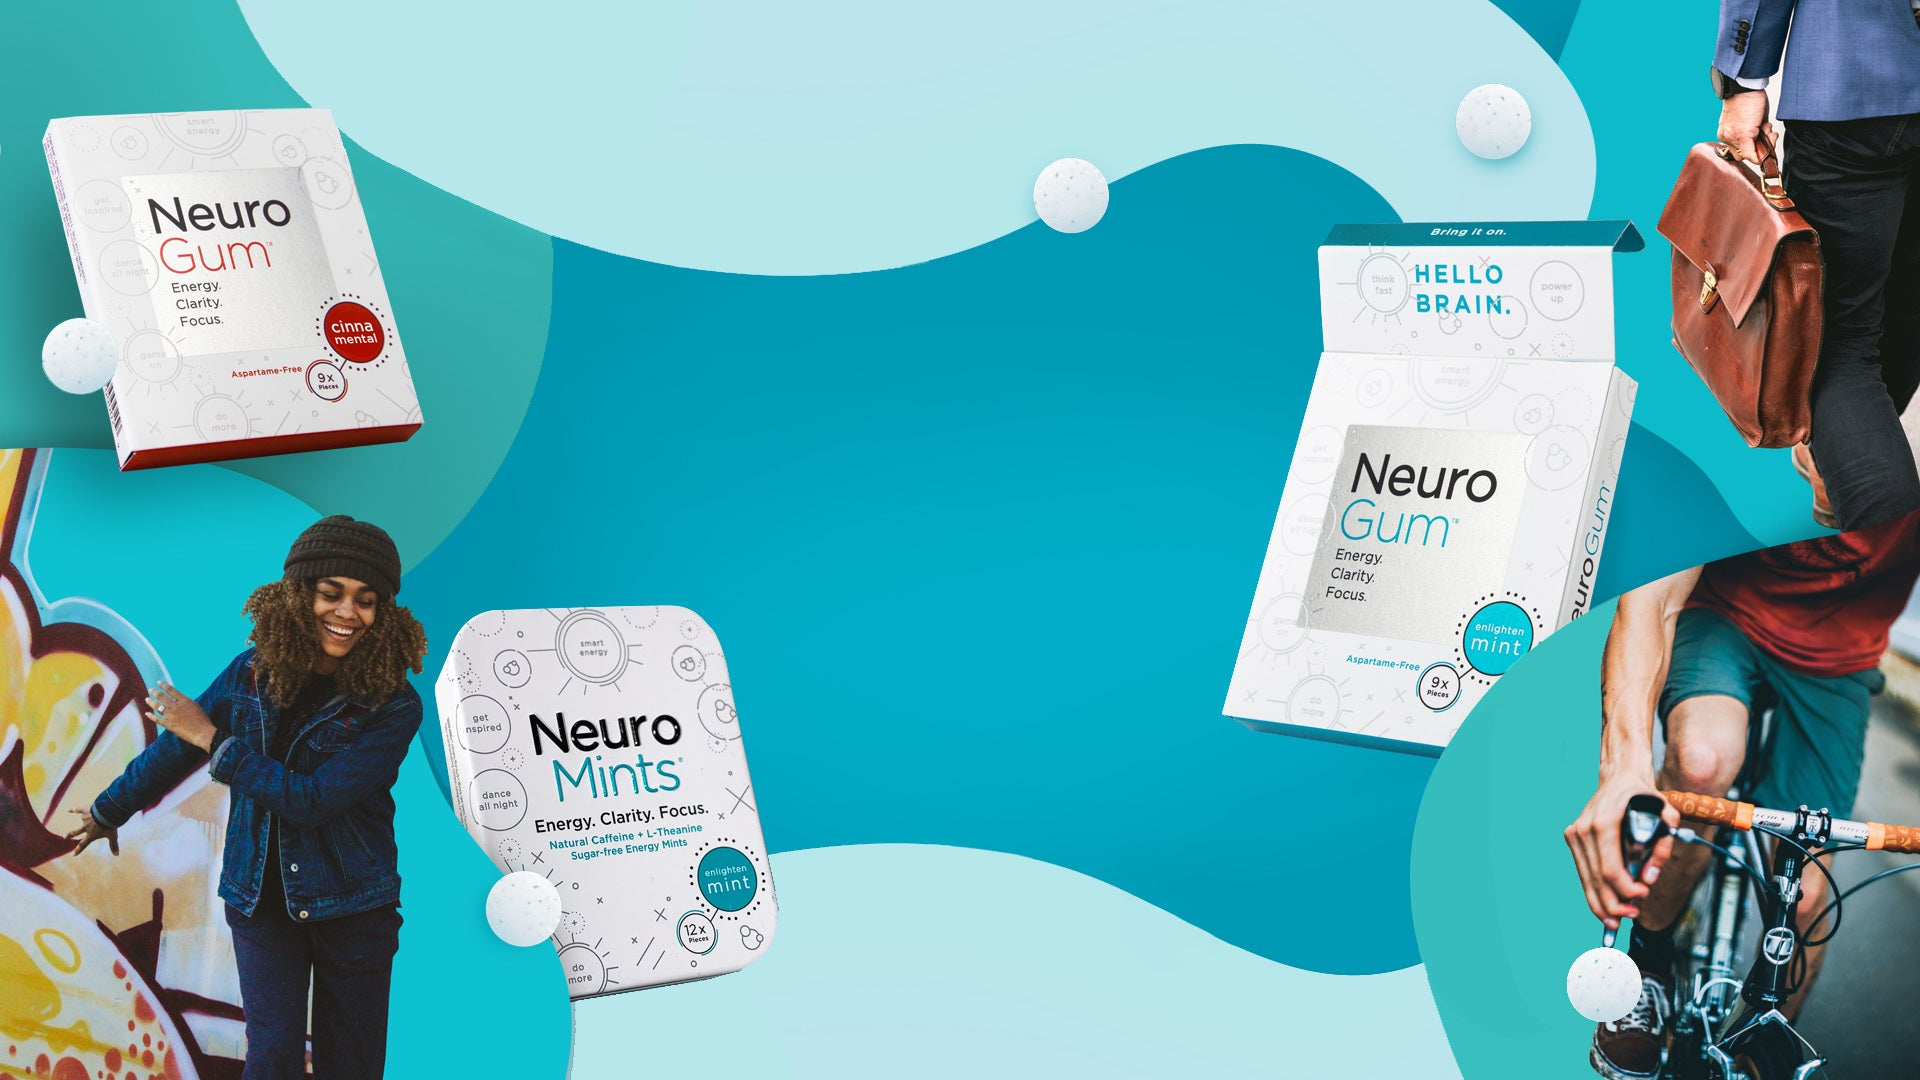 Functional gum and mints engineered to energize and focus your mind.